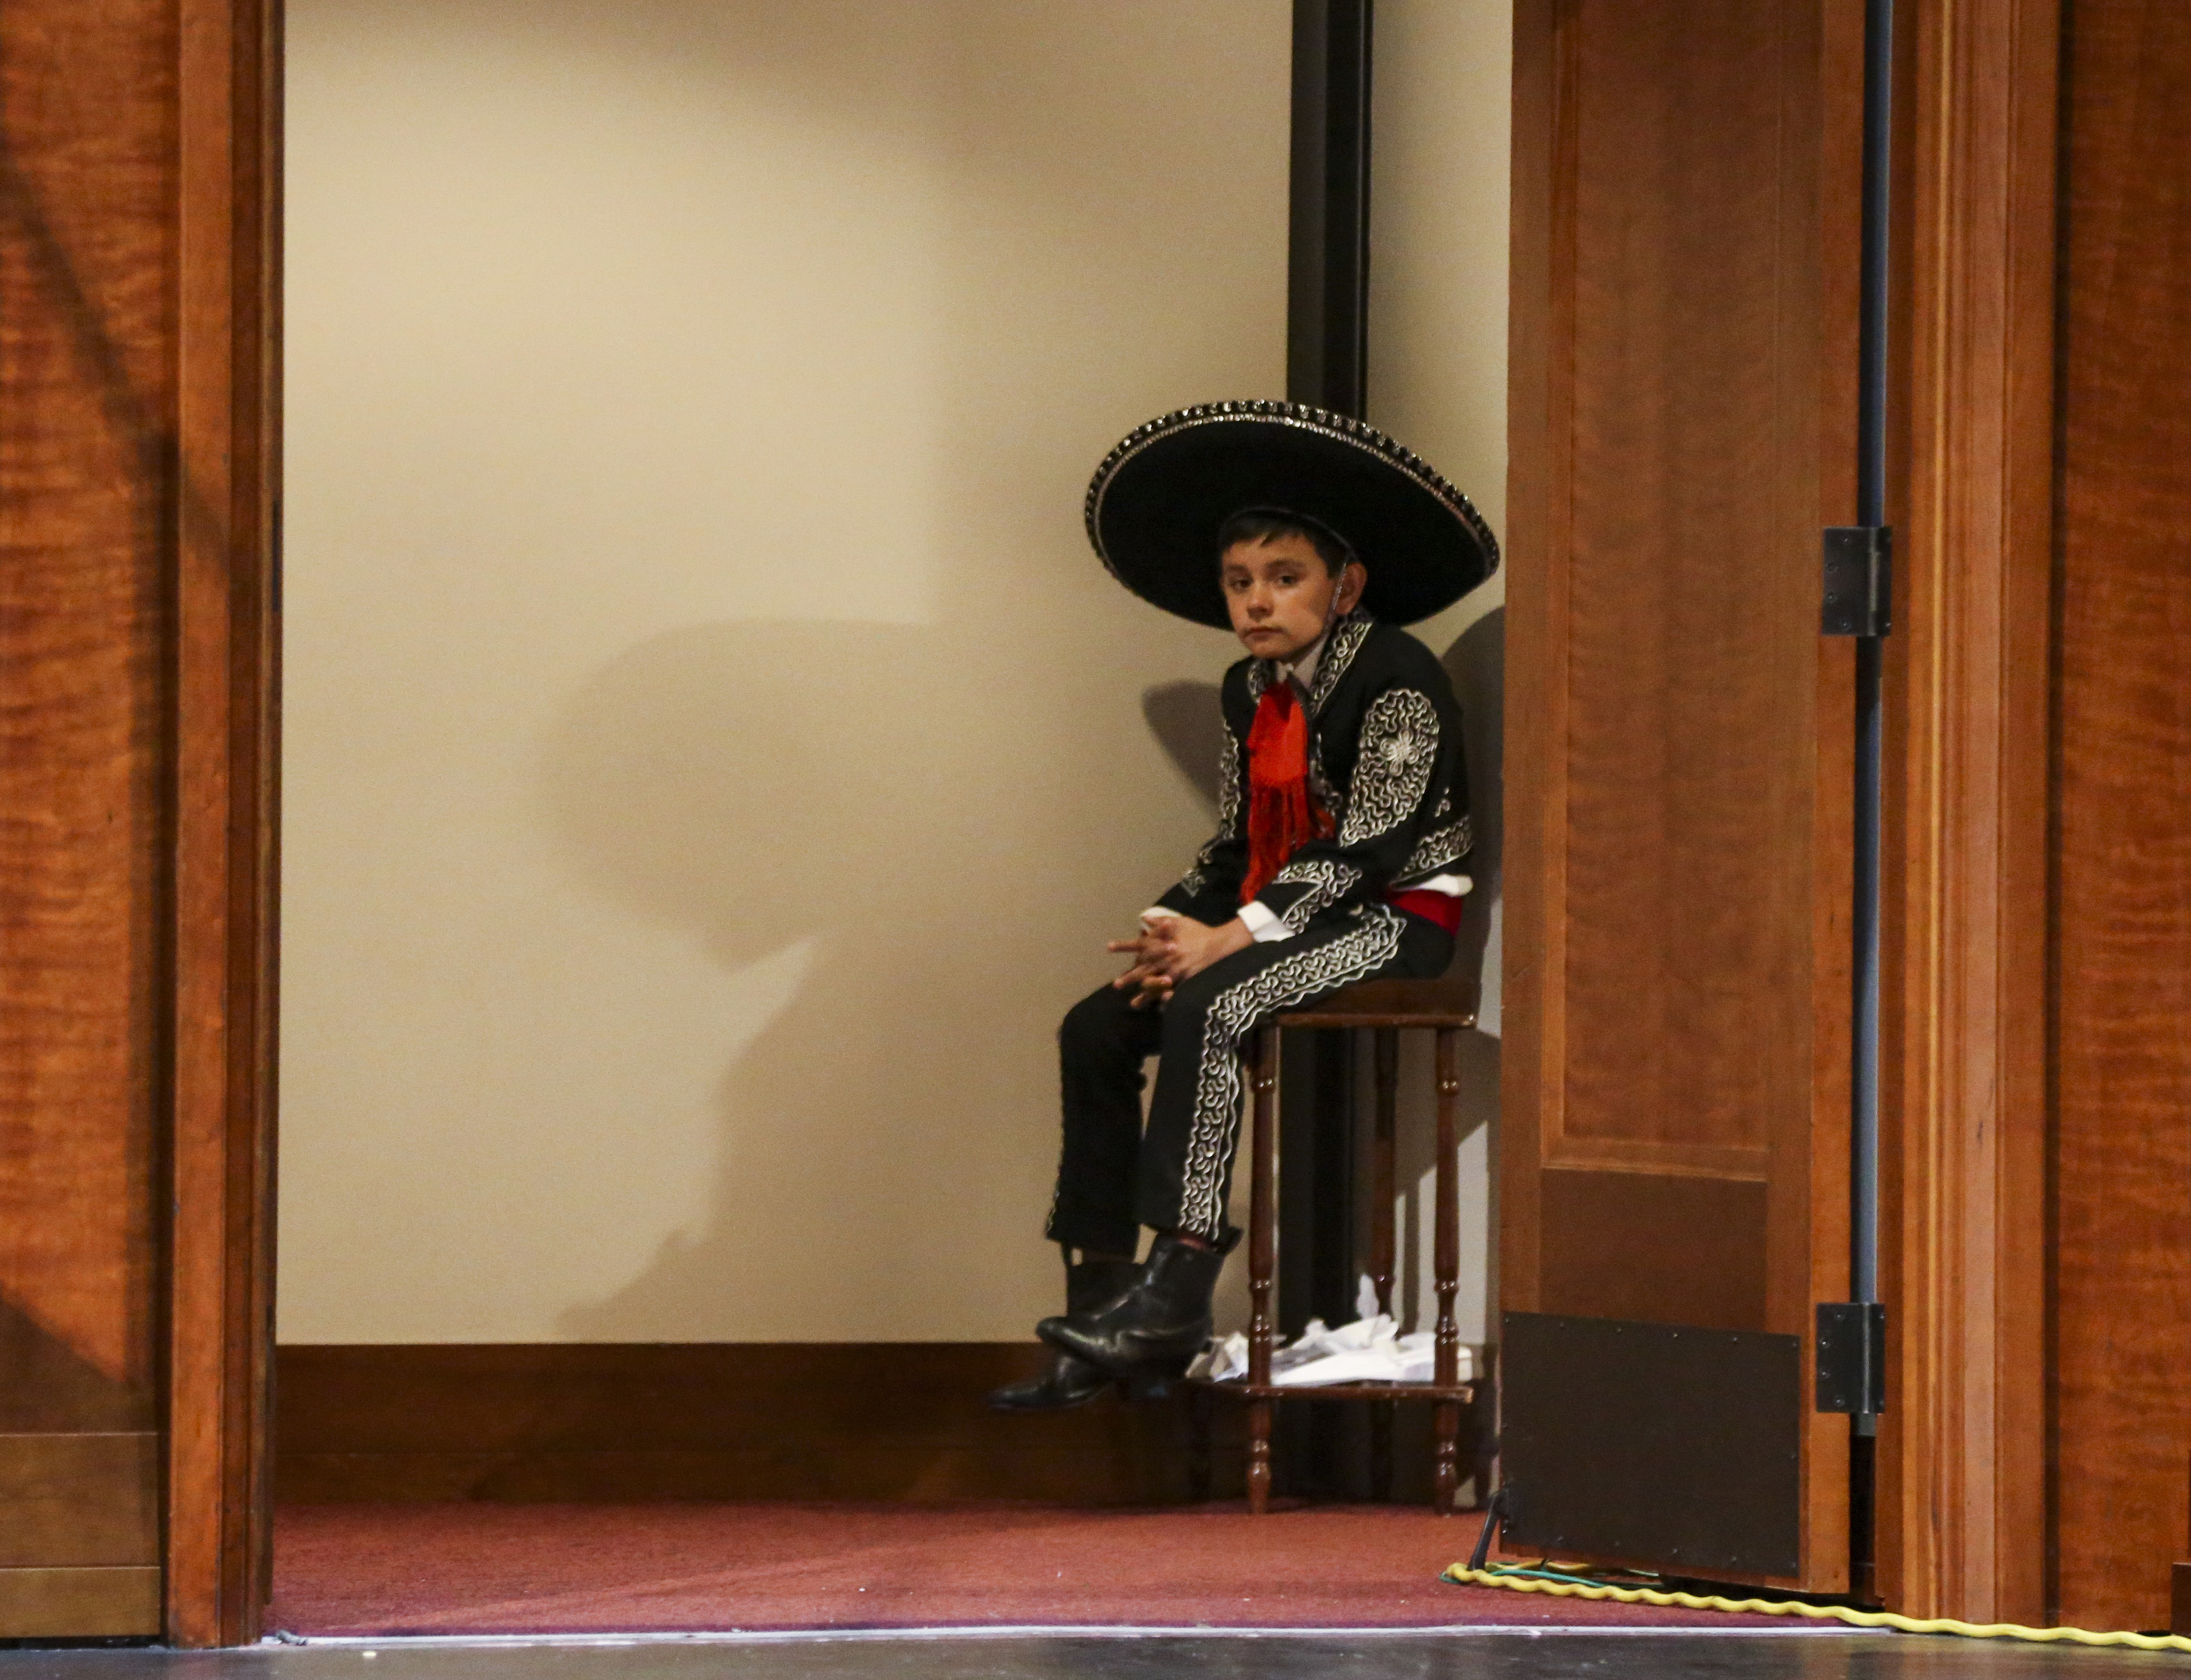 A young dancer waits to take the stage for the dress rehearsal of the Mexican dance Guadalajara LaNegra for the Luz de las Naciones performance at the Conference Center in Salt Lake City on Saturday, Oct. 26, 2019.